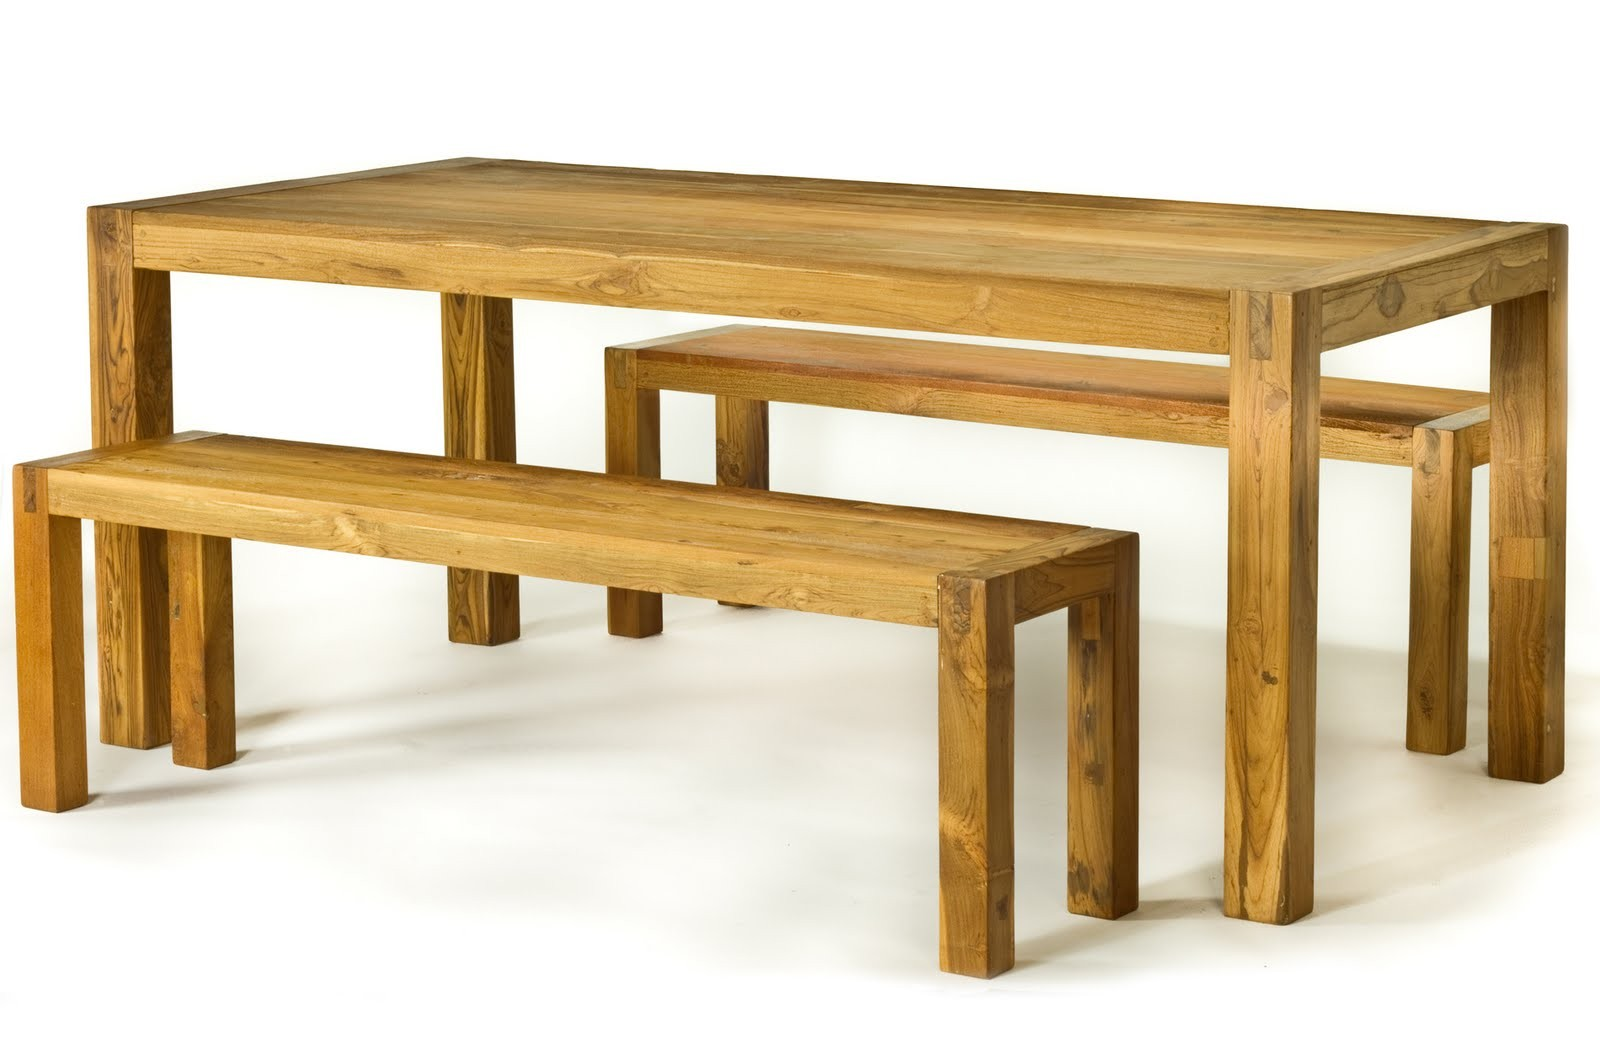 Baby green reclaimed wood dining tables Best wood for dining table